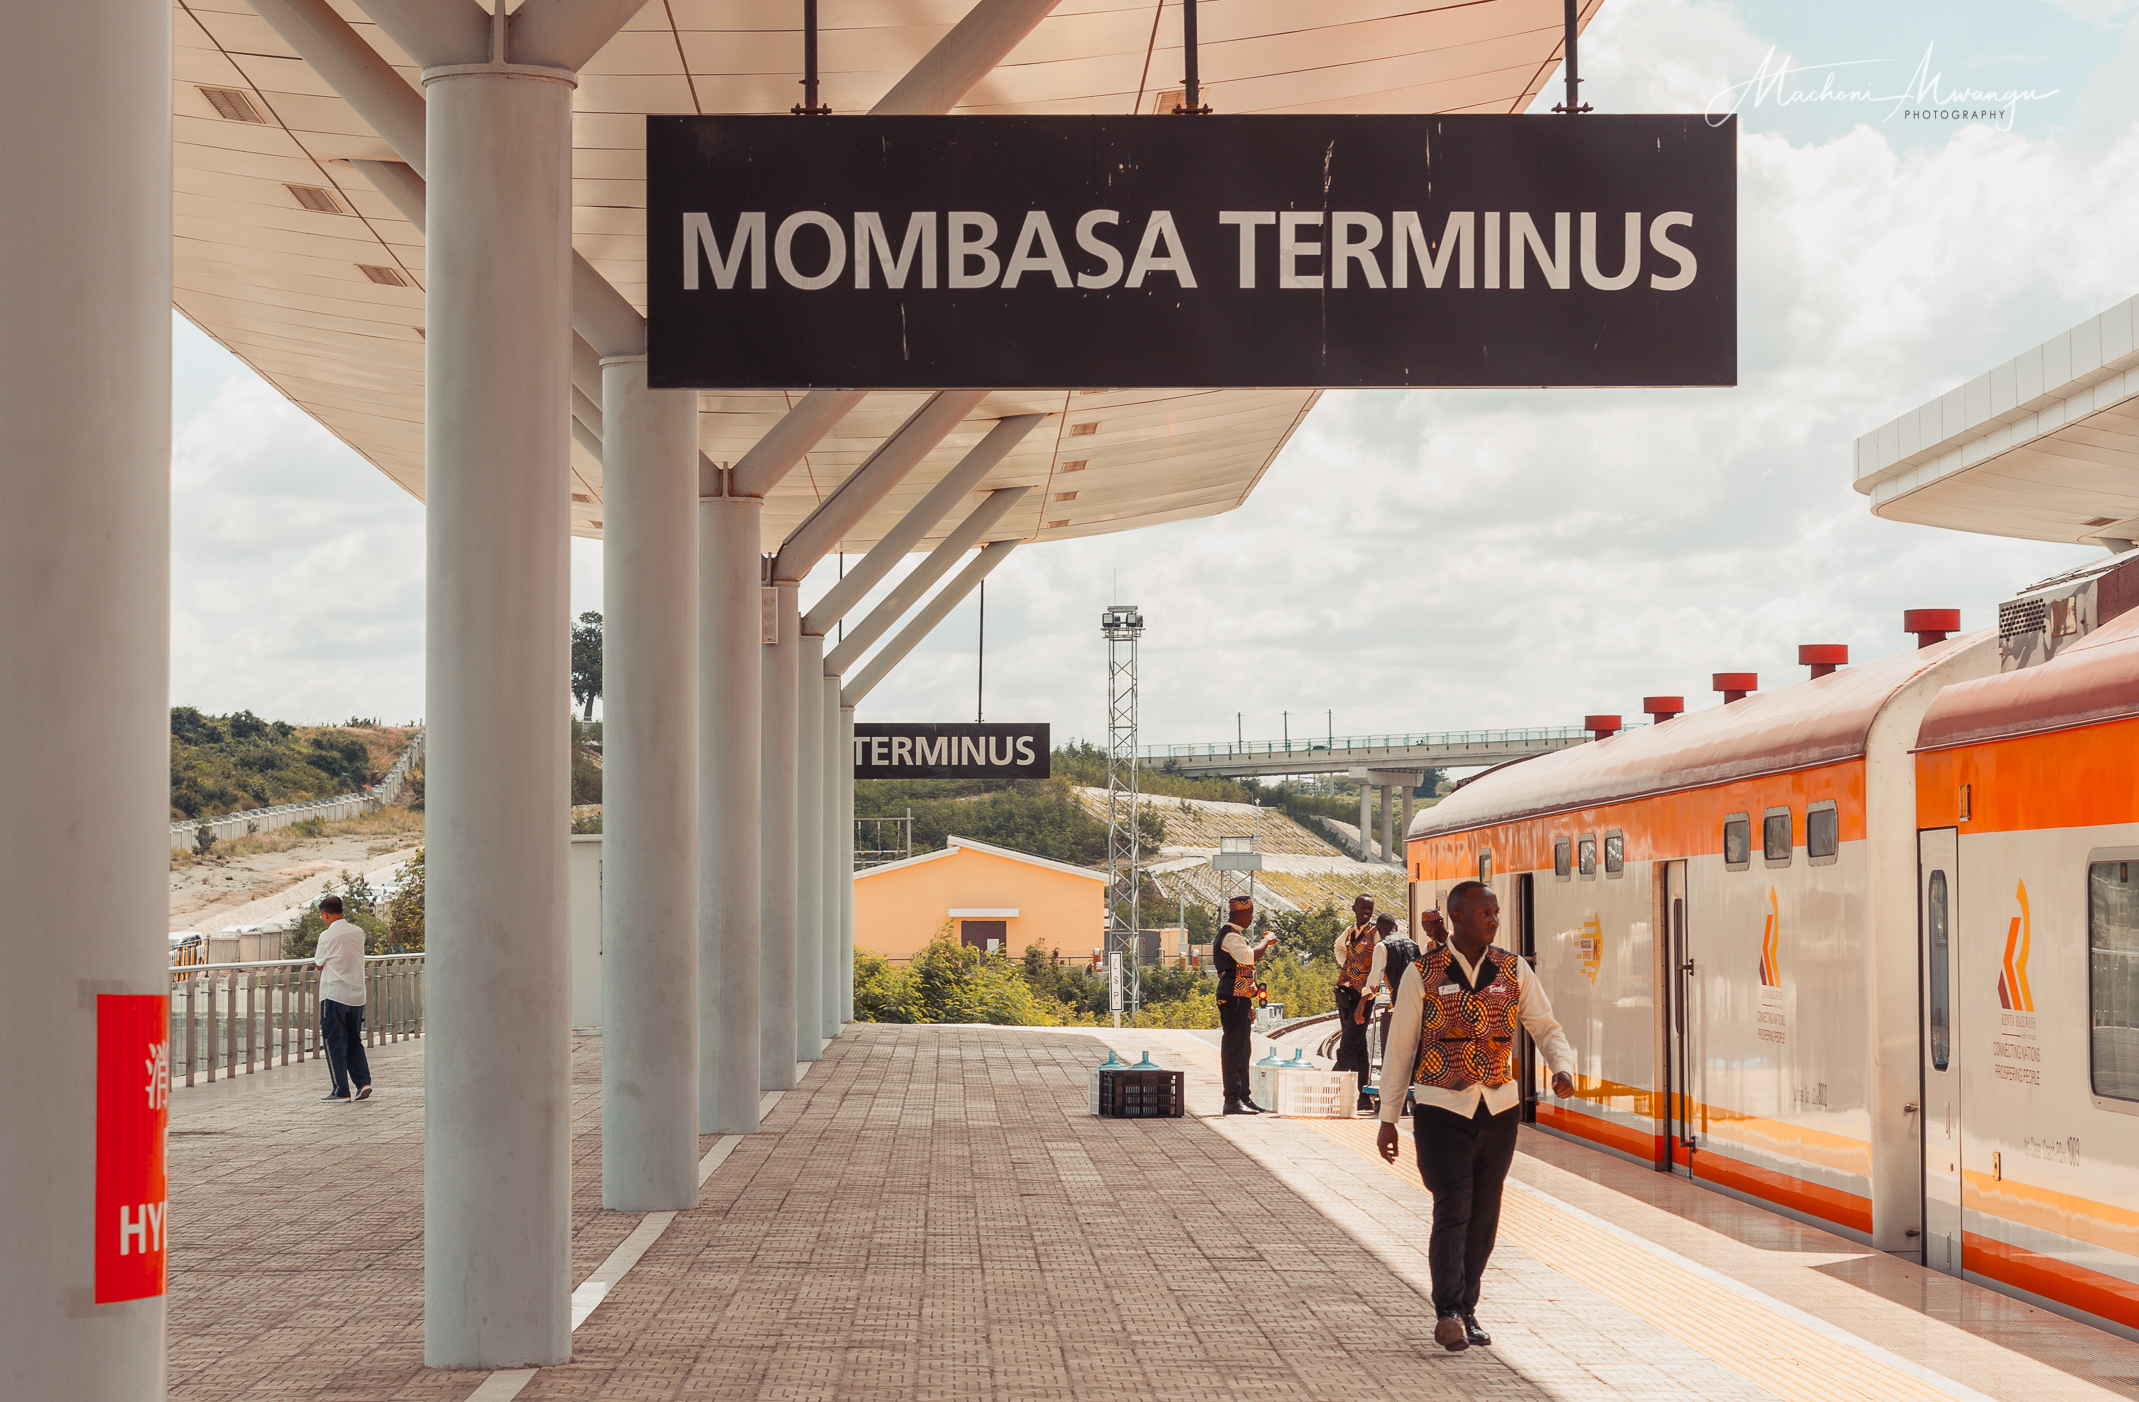 The Mombasa Station